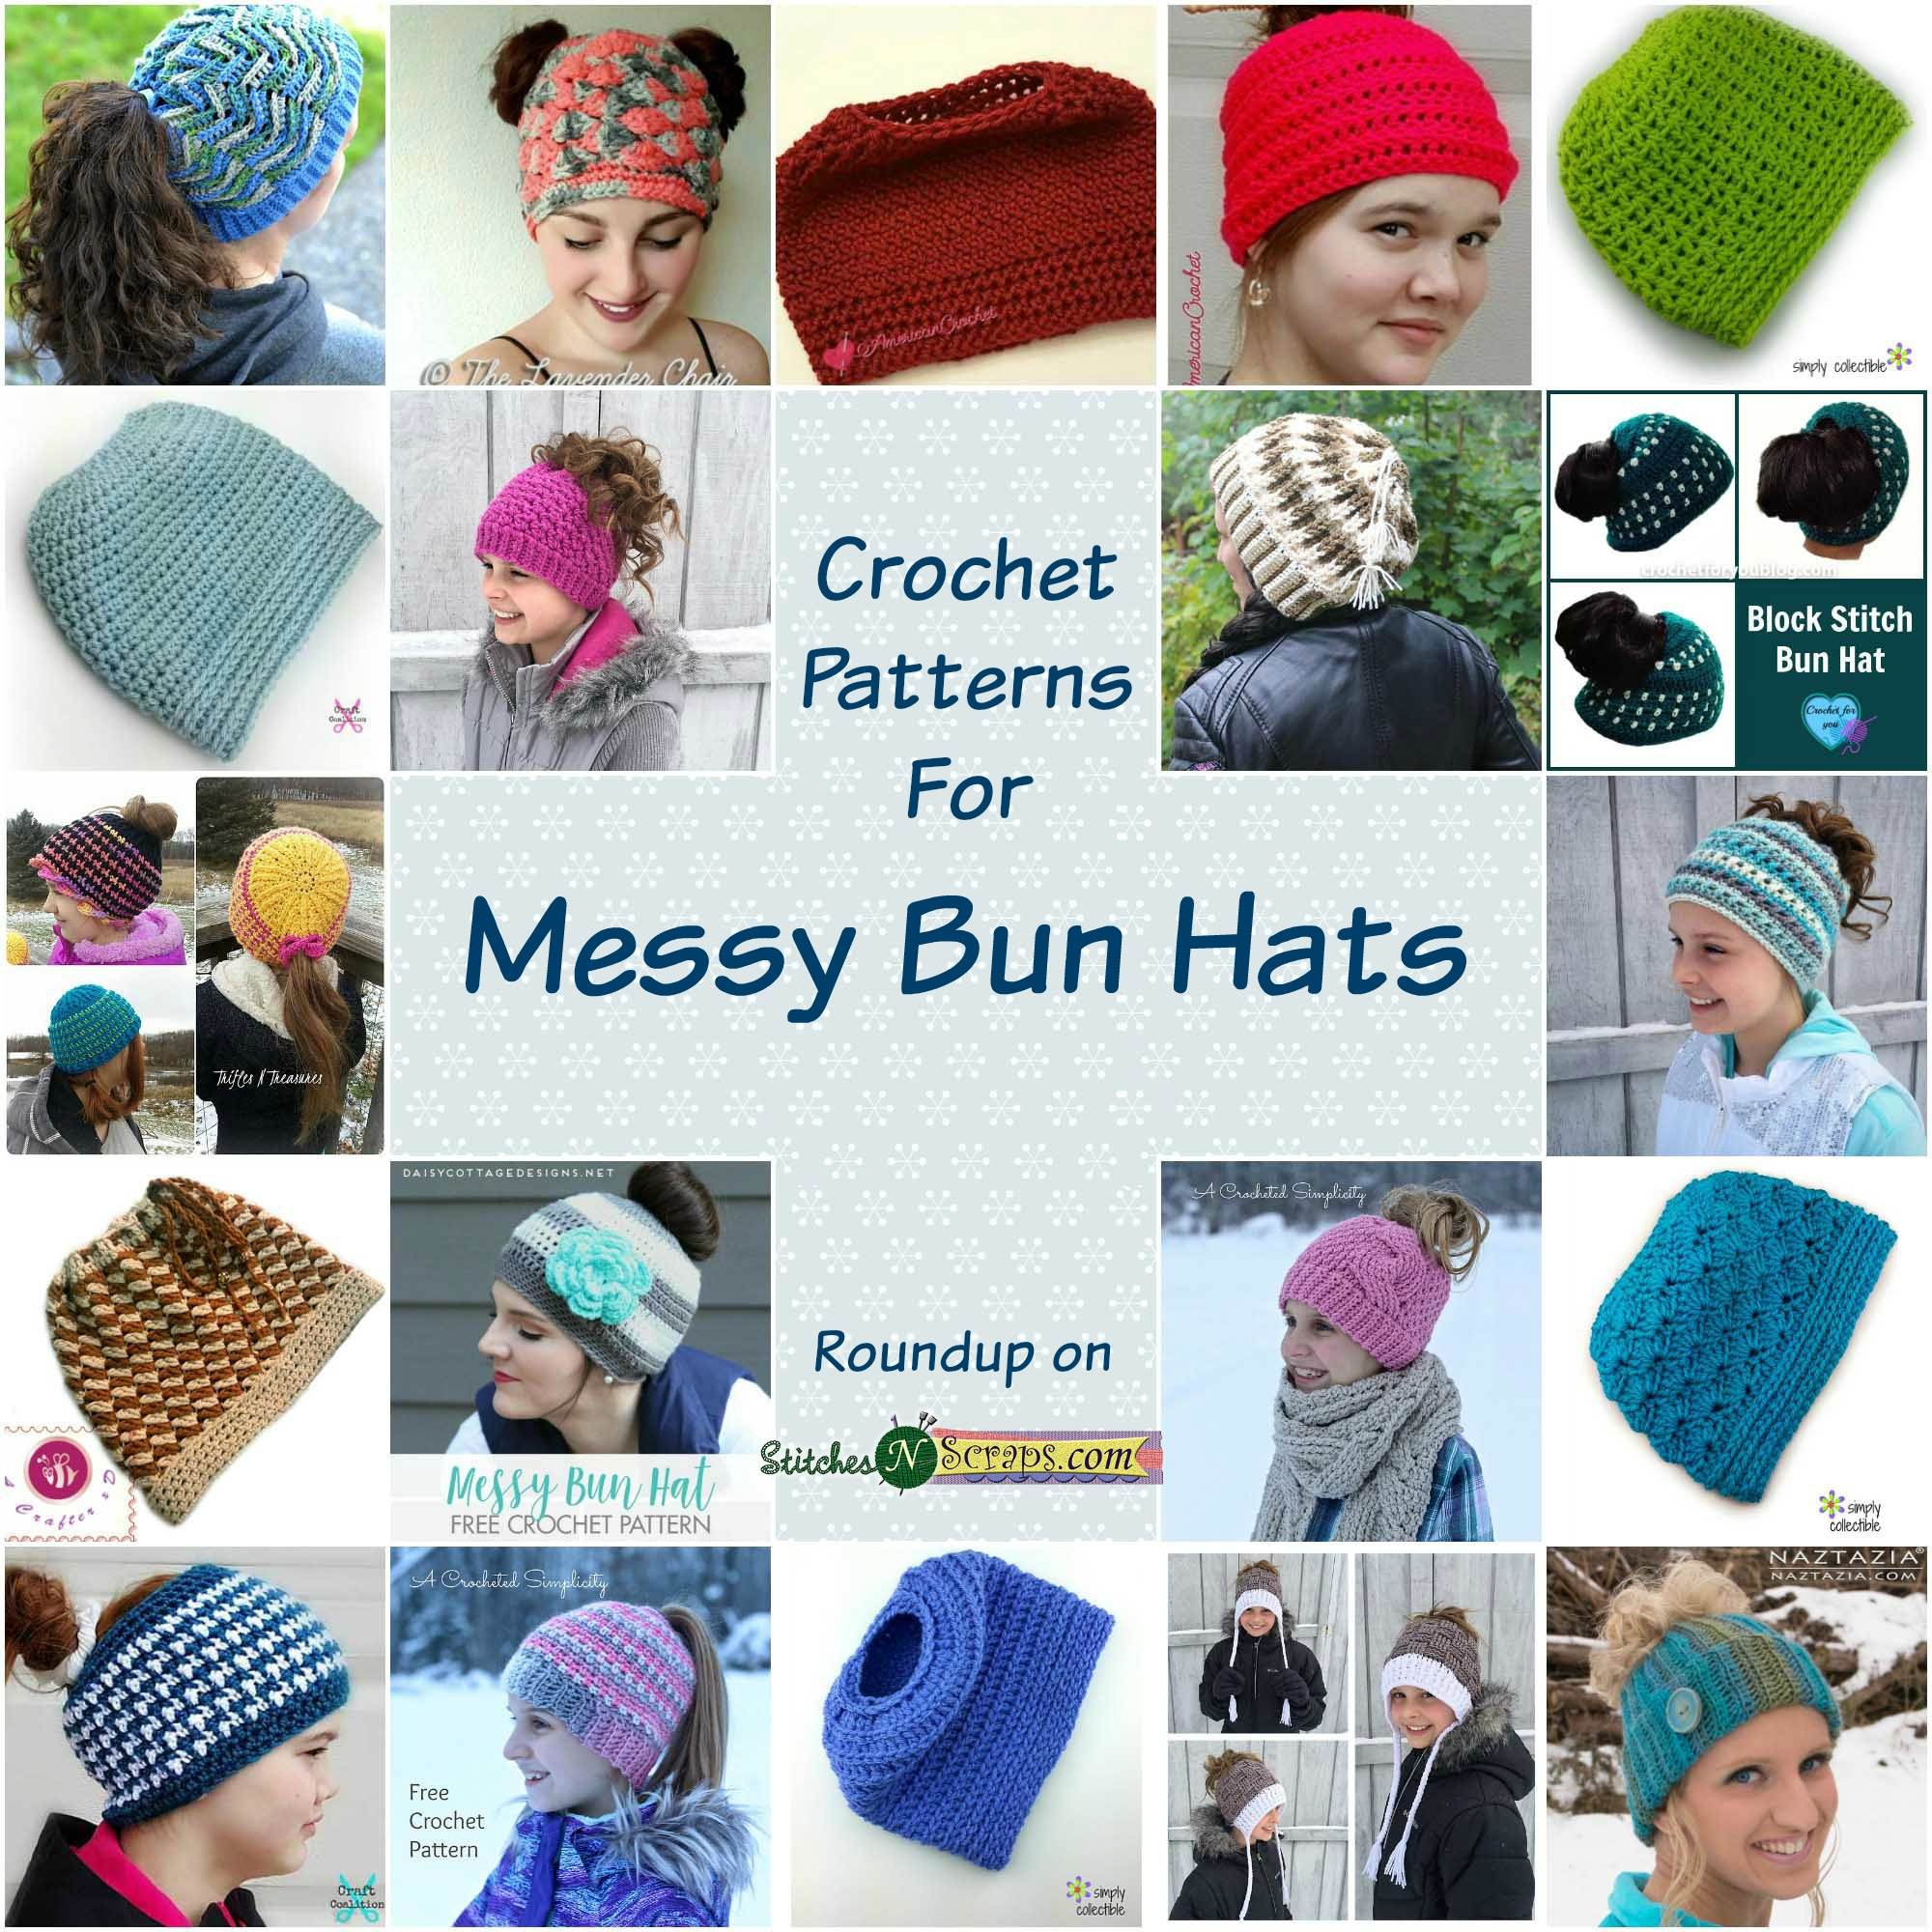 d6293a583a9 Round up - Messy Bun and Ponytail Hats - Stitches n Scraps